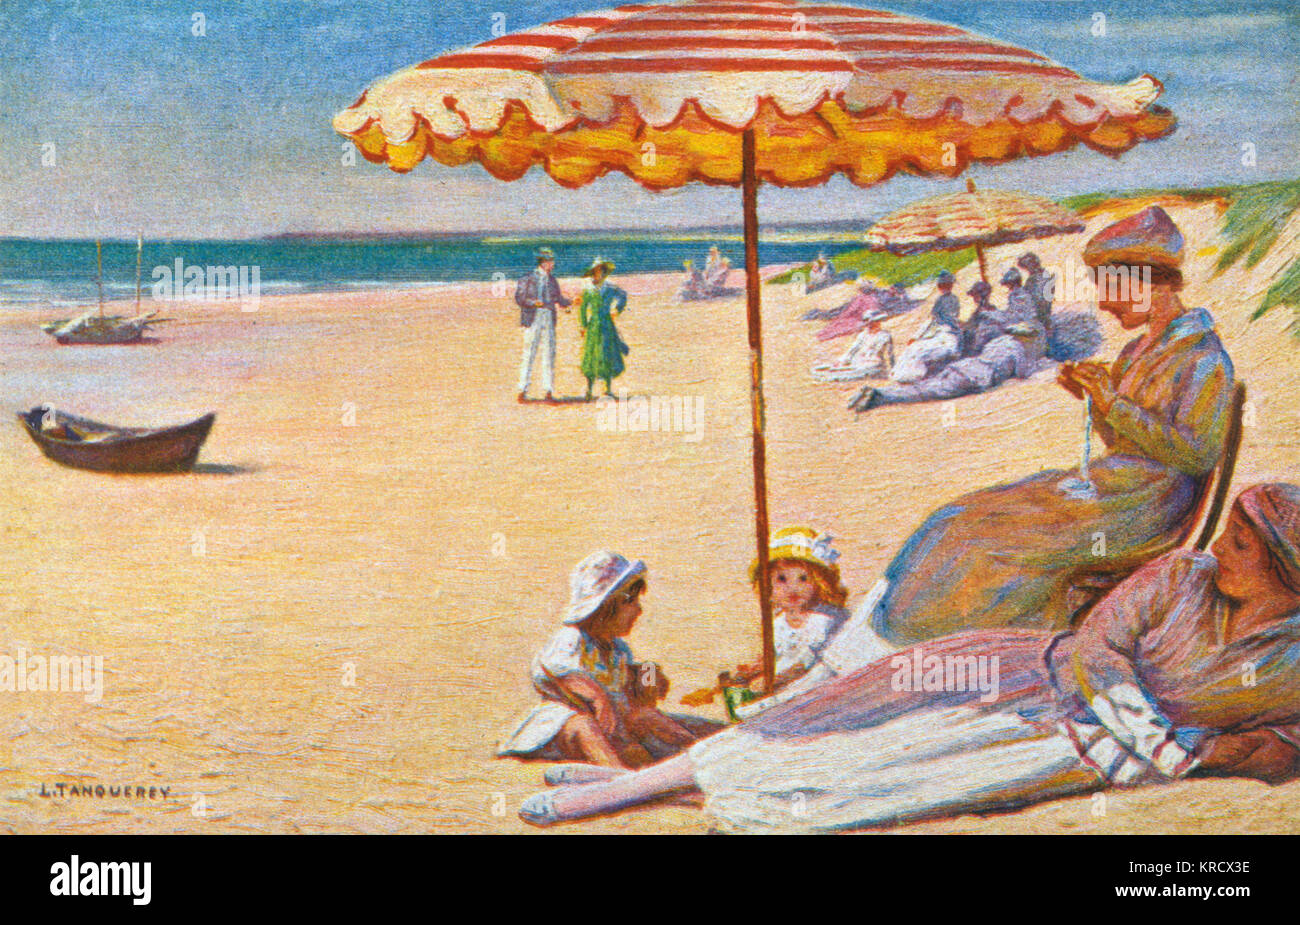 Shaded from the sun beneath a beach-parasol on the sand. Date: 1920s - Stock Image